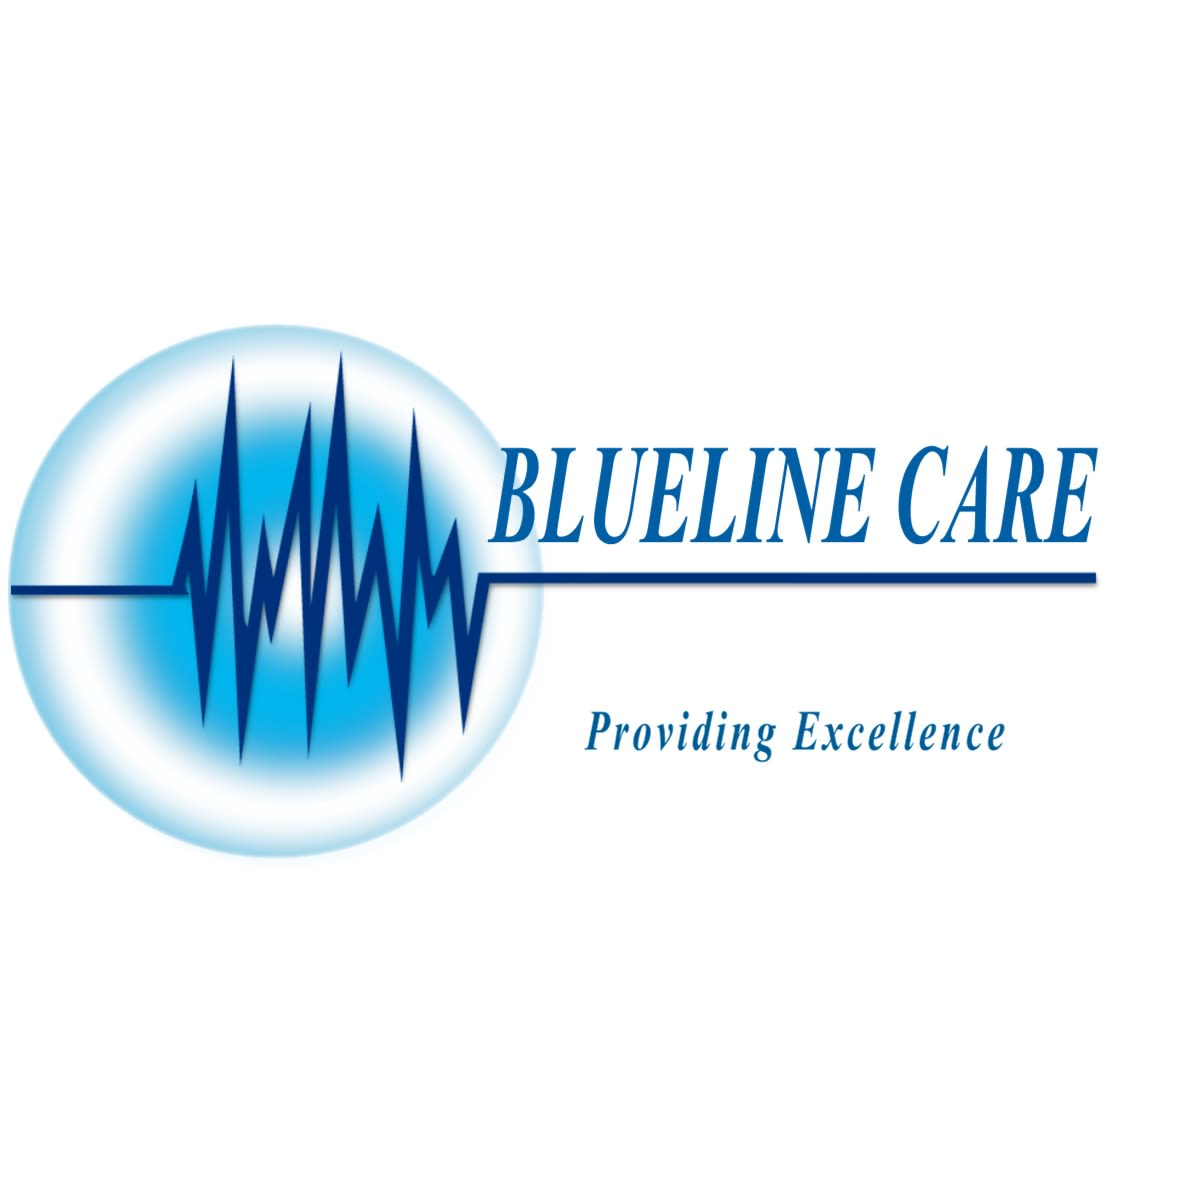 BLUELINECARE LTD